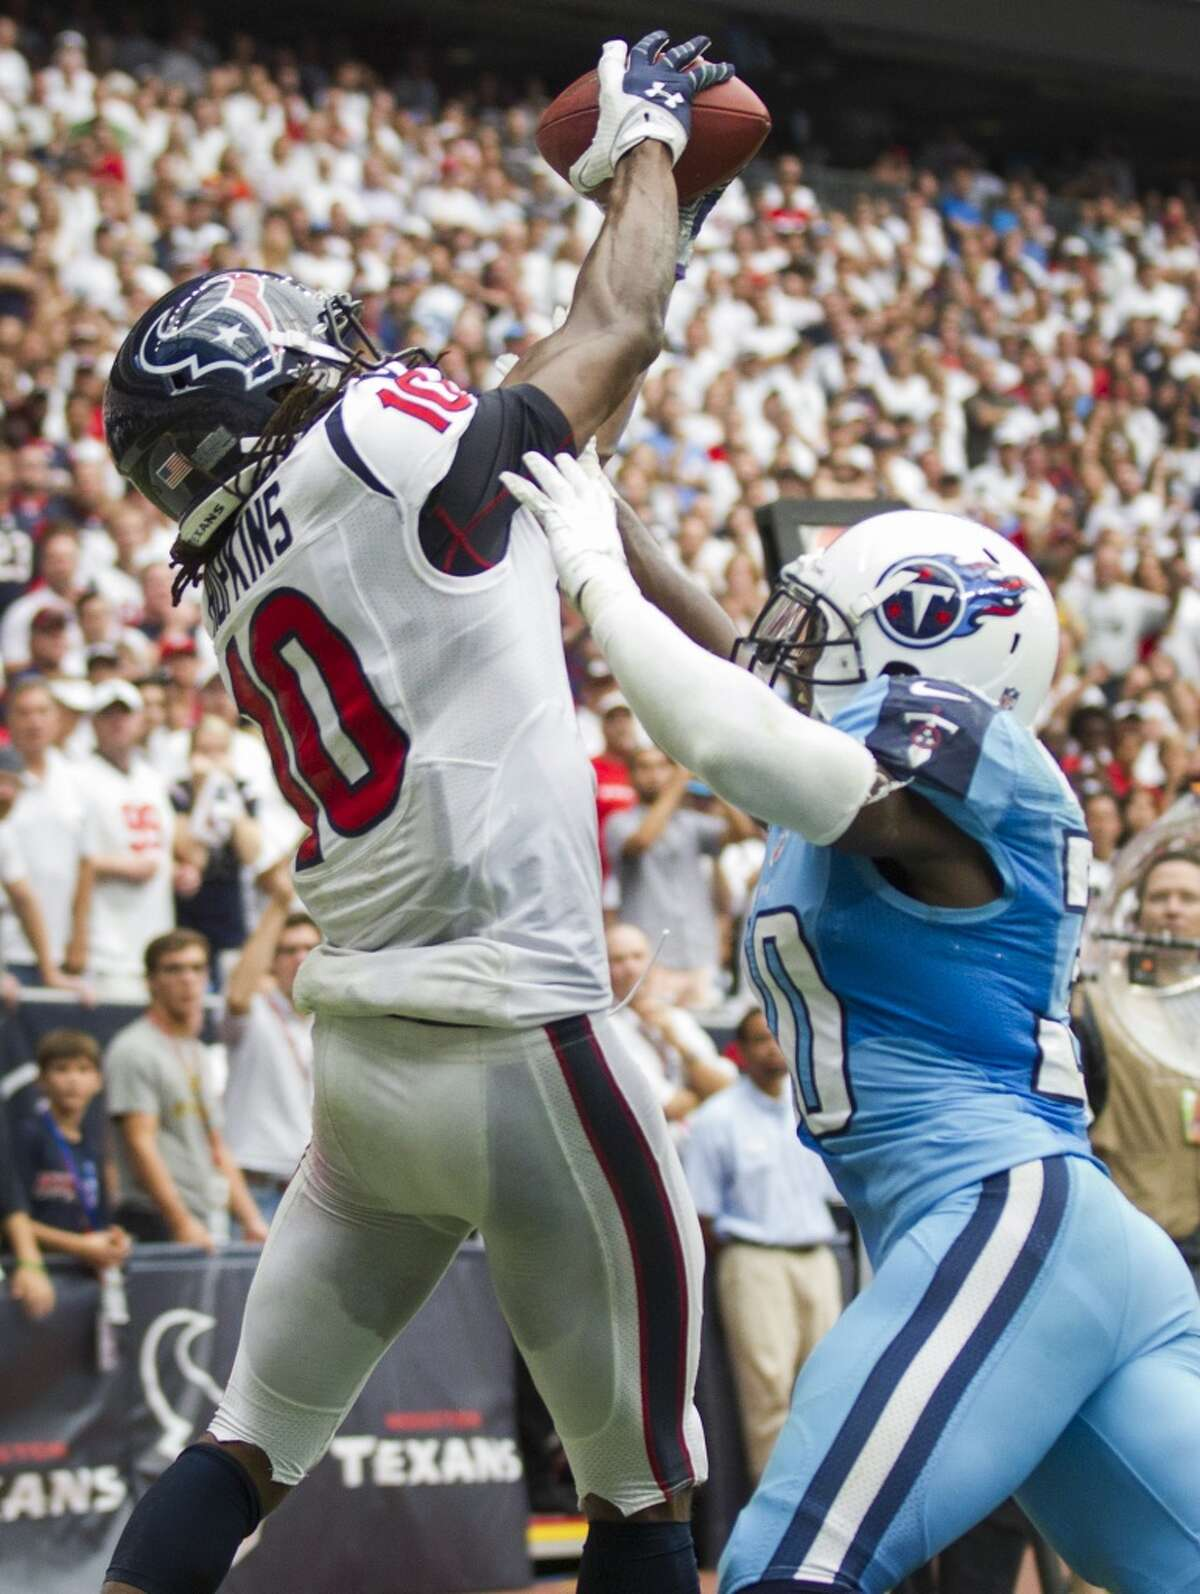 Texans wide receiver DeAndre Hopkins leaps over Titans cornerback Jason McCourty or a 3-yard touchdown reception during overtime.